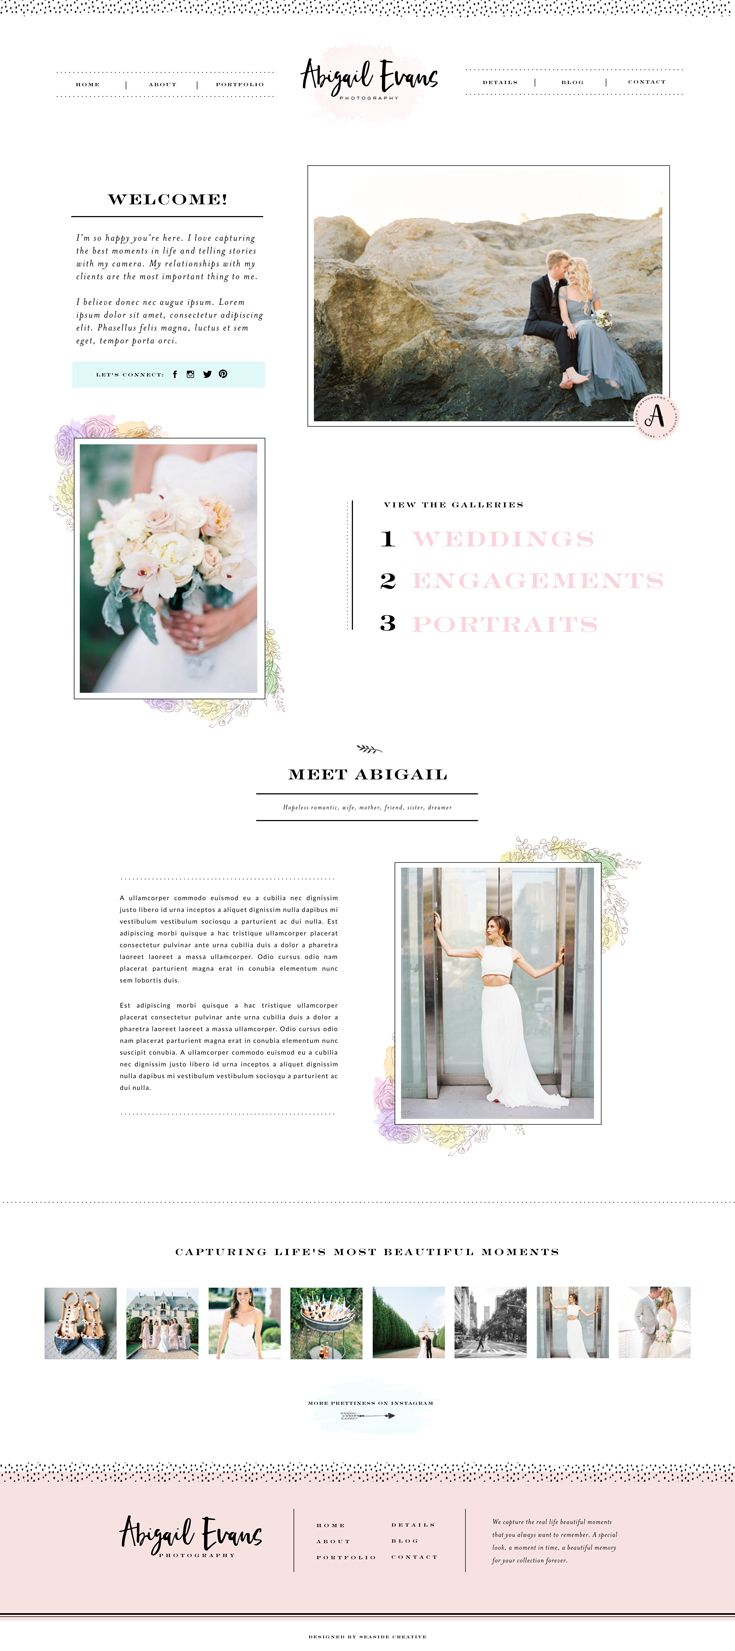 Abigail Showit 5 Website Design by Seaside Creative.   Whimsical, Bold, Approachable, Professional